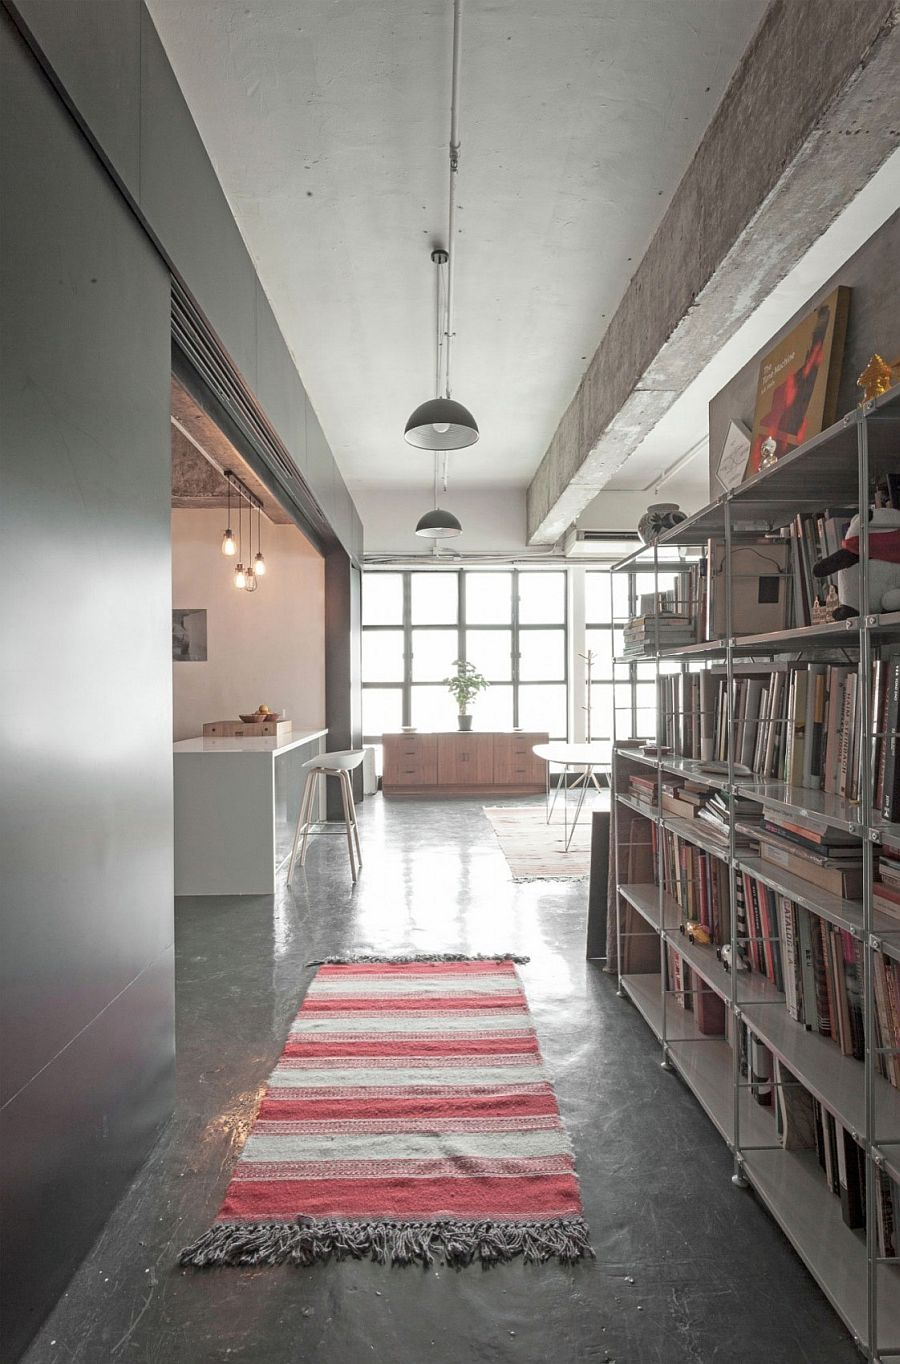 Exposed concrete surfaces and gray walls give the room an industrial vibe